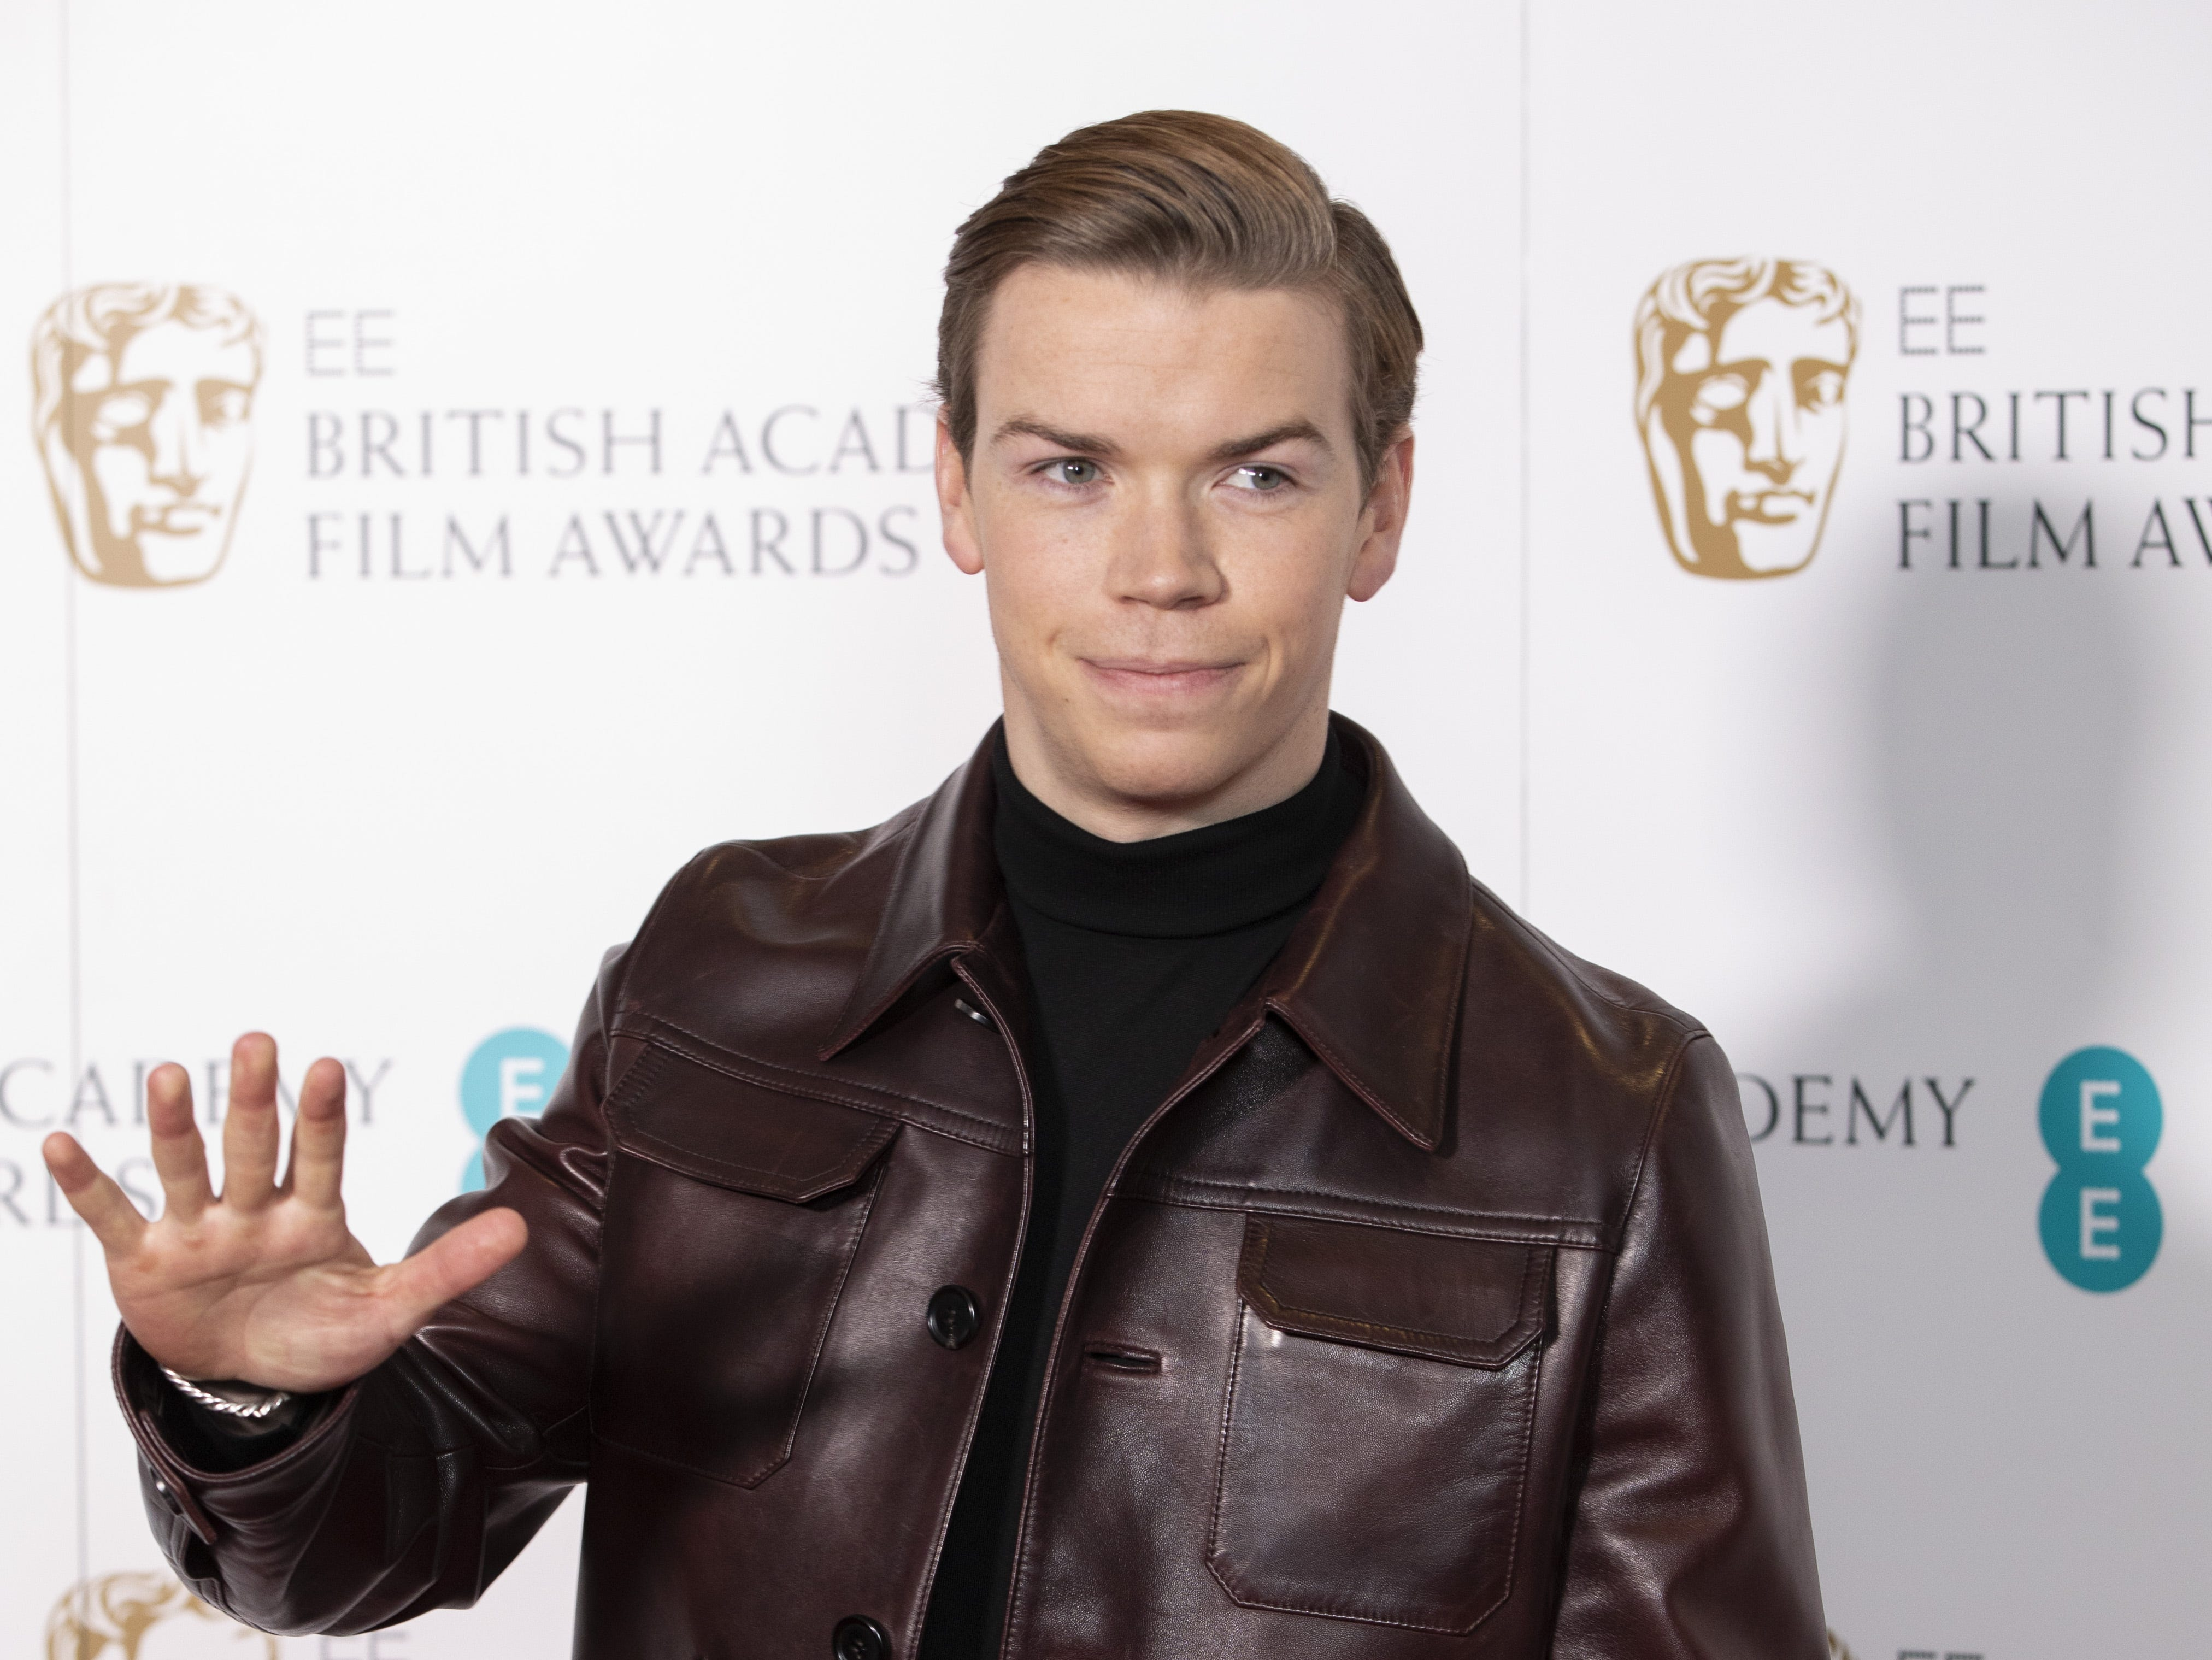 LONDON, ENGLAND - JANUARY 09:  Will Poulter attends the EE BAFTA Film Awards nominations announcement held at BAFTA on January 09, 2019 in London, England. (Photo by John Phillips/Getty Images) ORG XMIT: 775278090 ORIG FILE ID: 1091658588